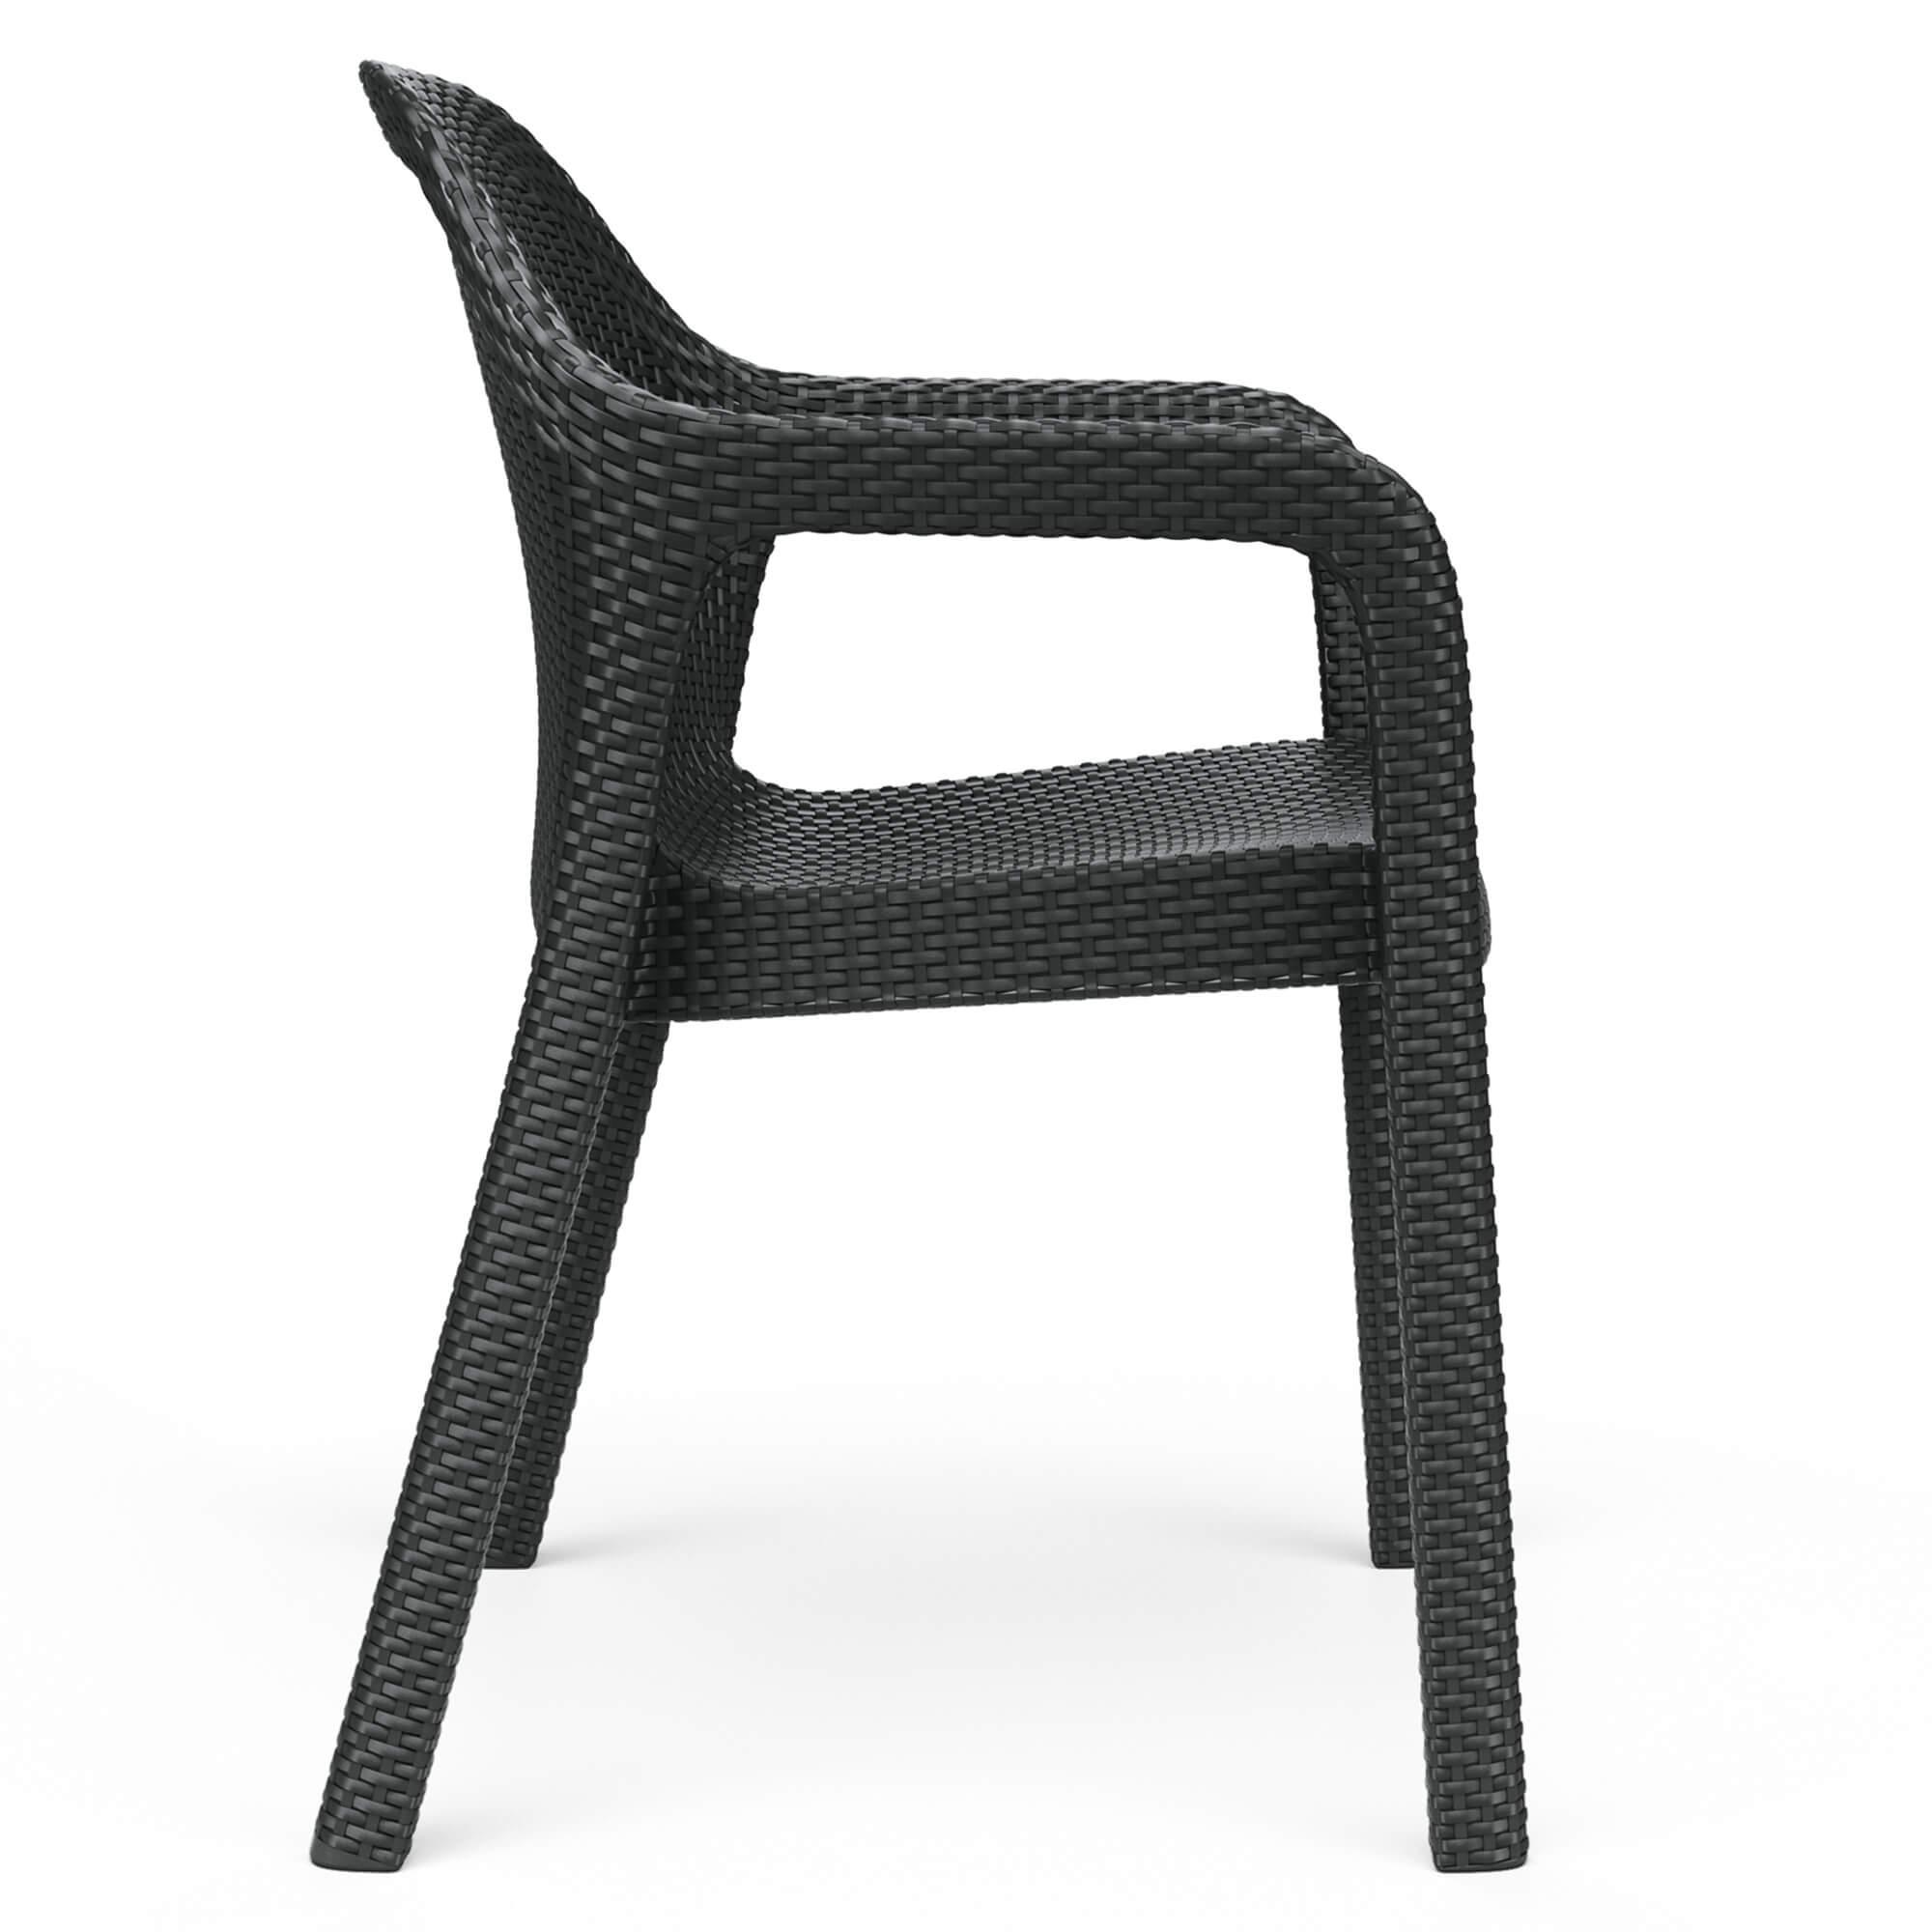 Chair mocha - Image 3